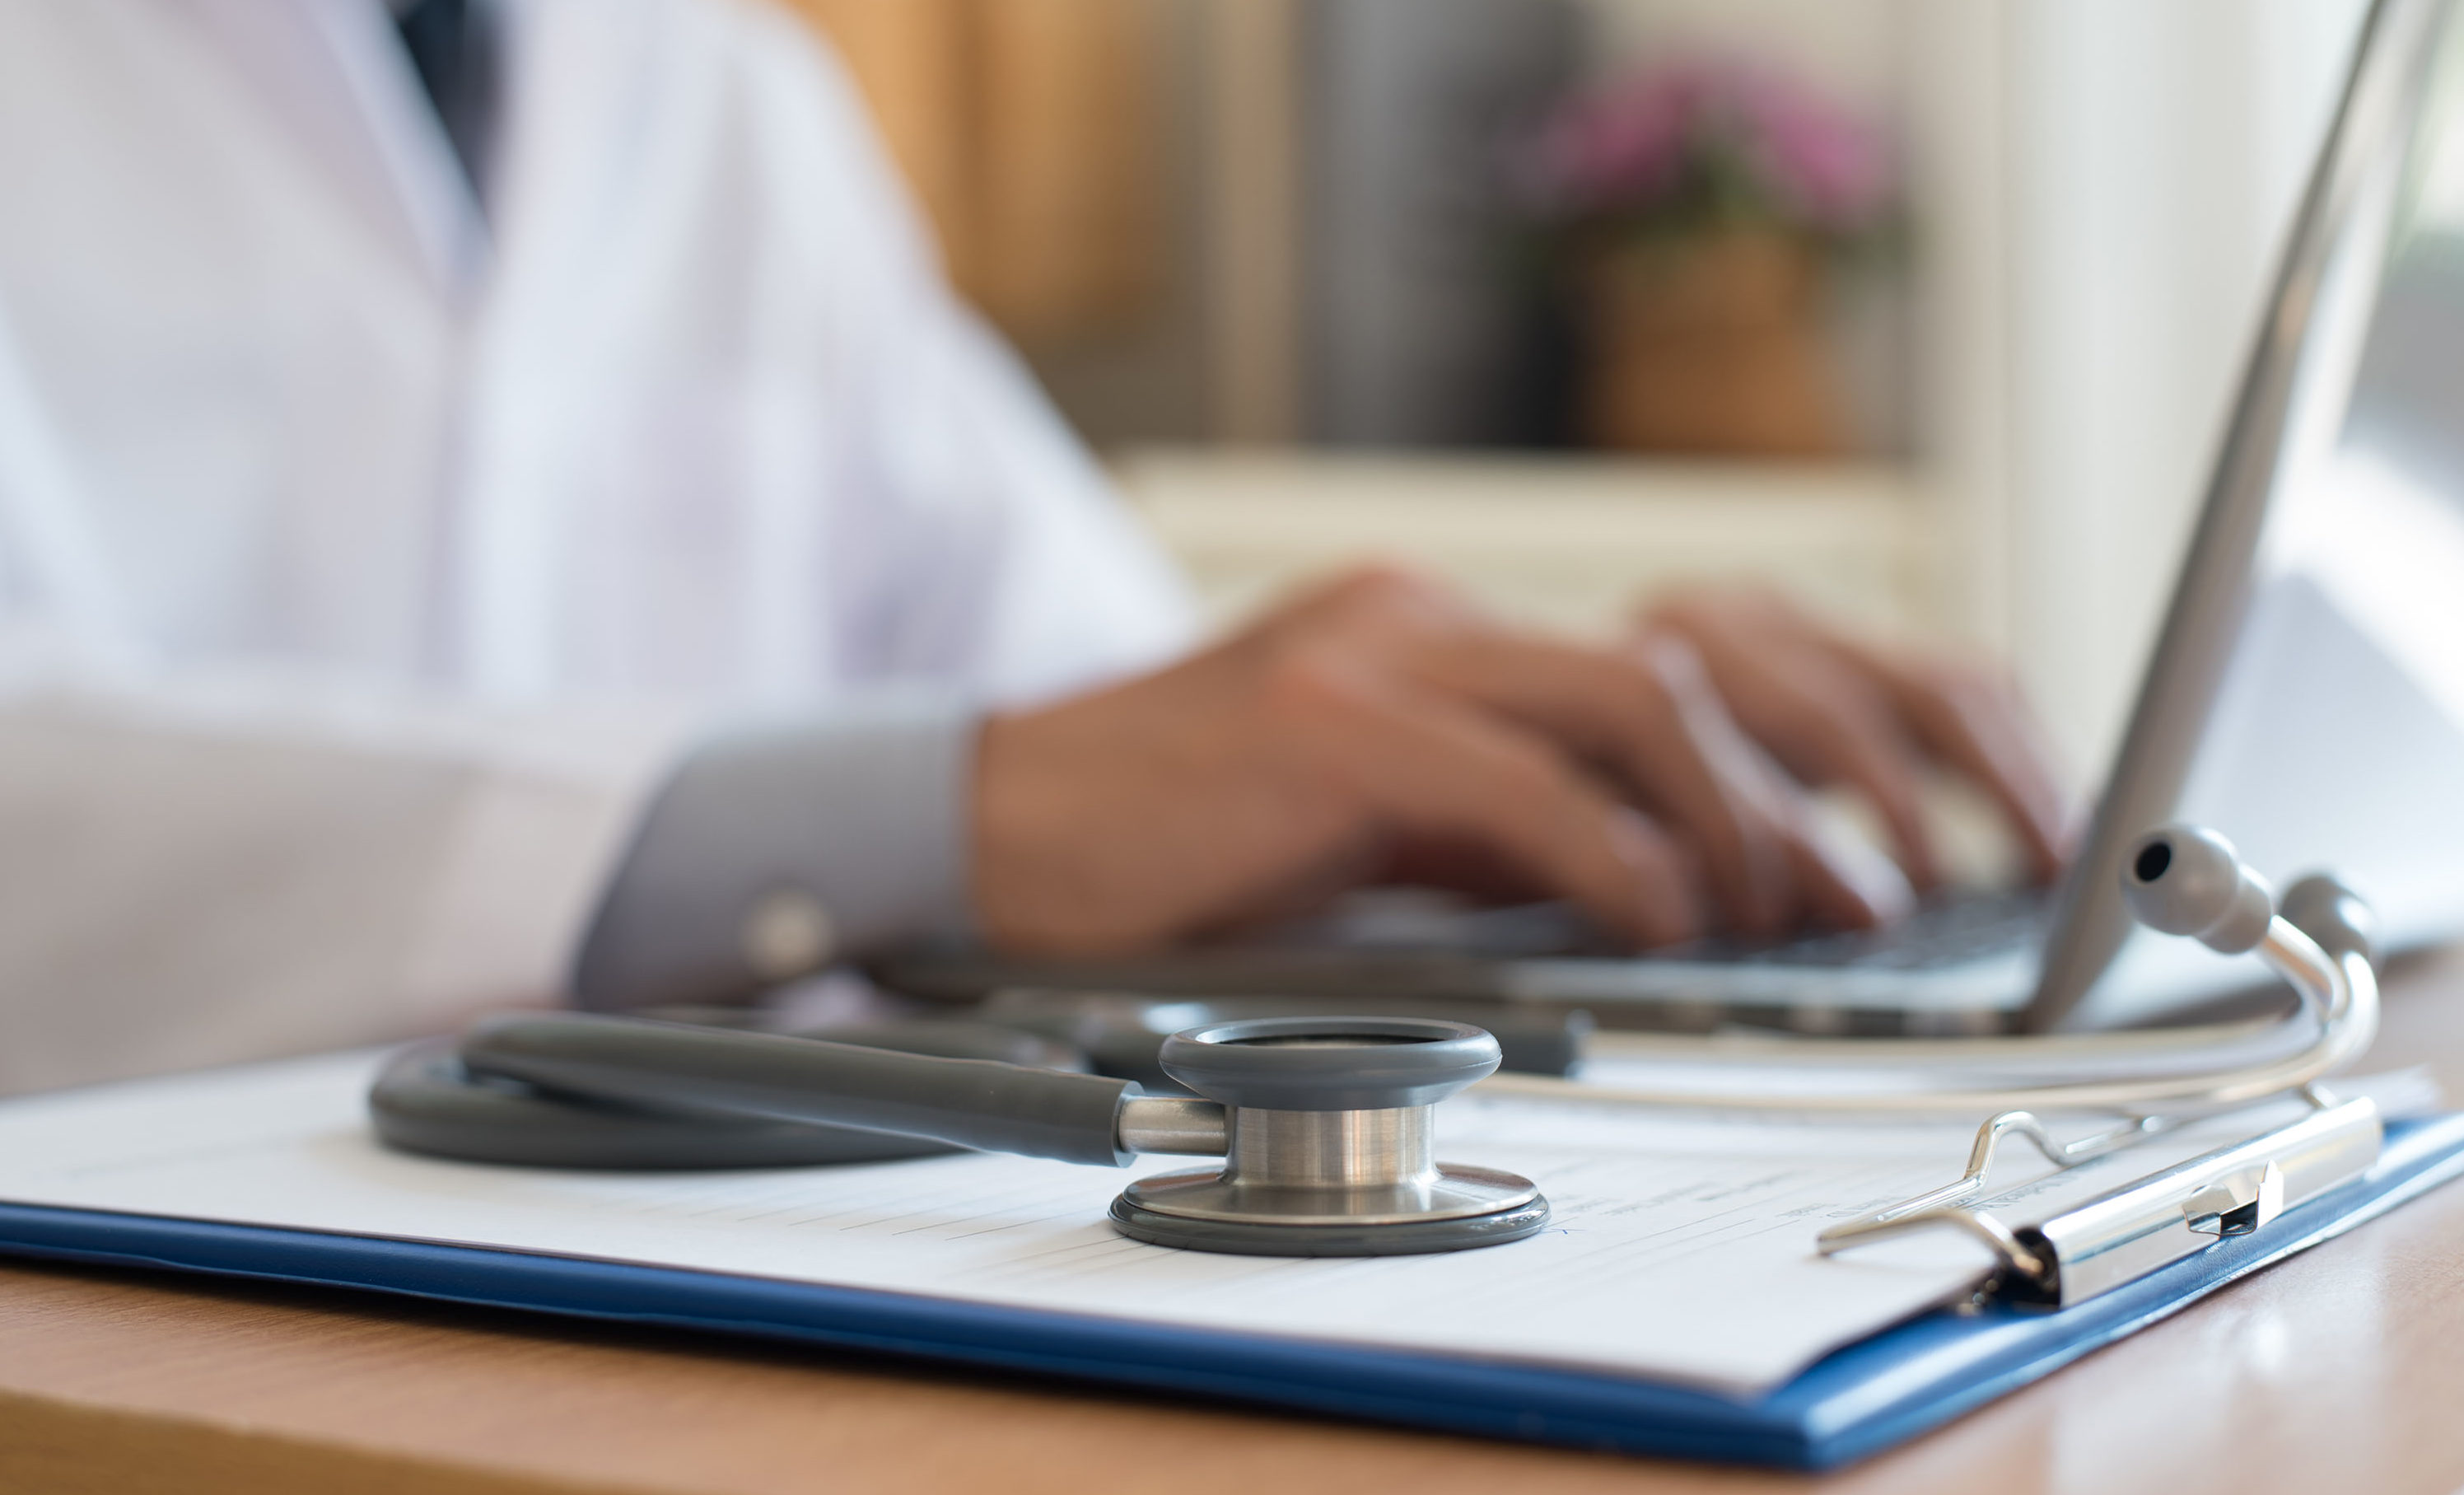 Medical practices are under enough stress — don't let fraud add to the load